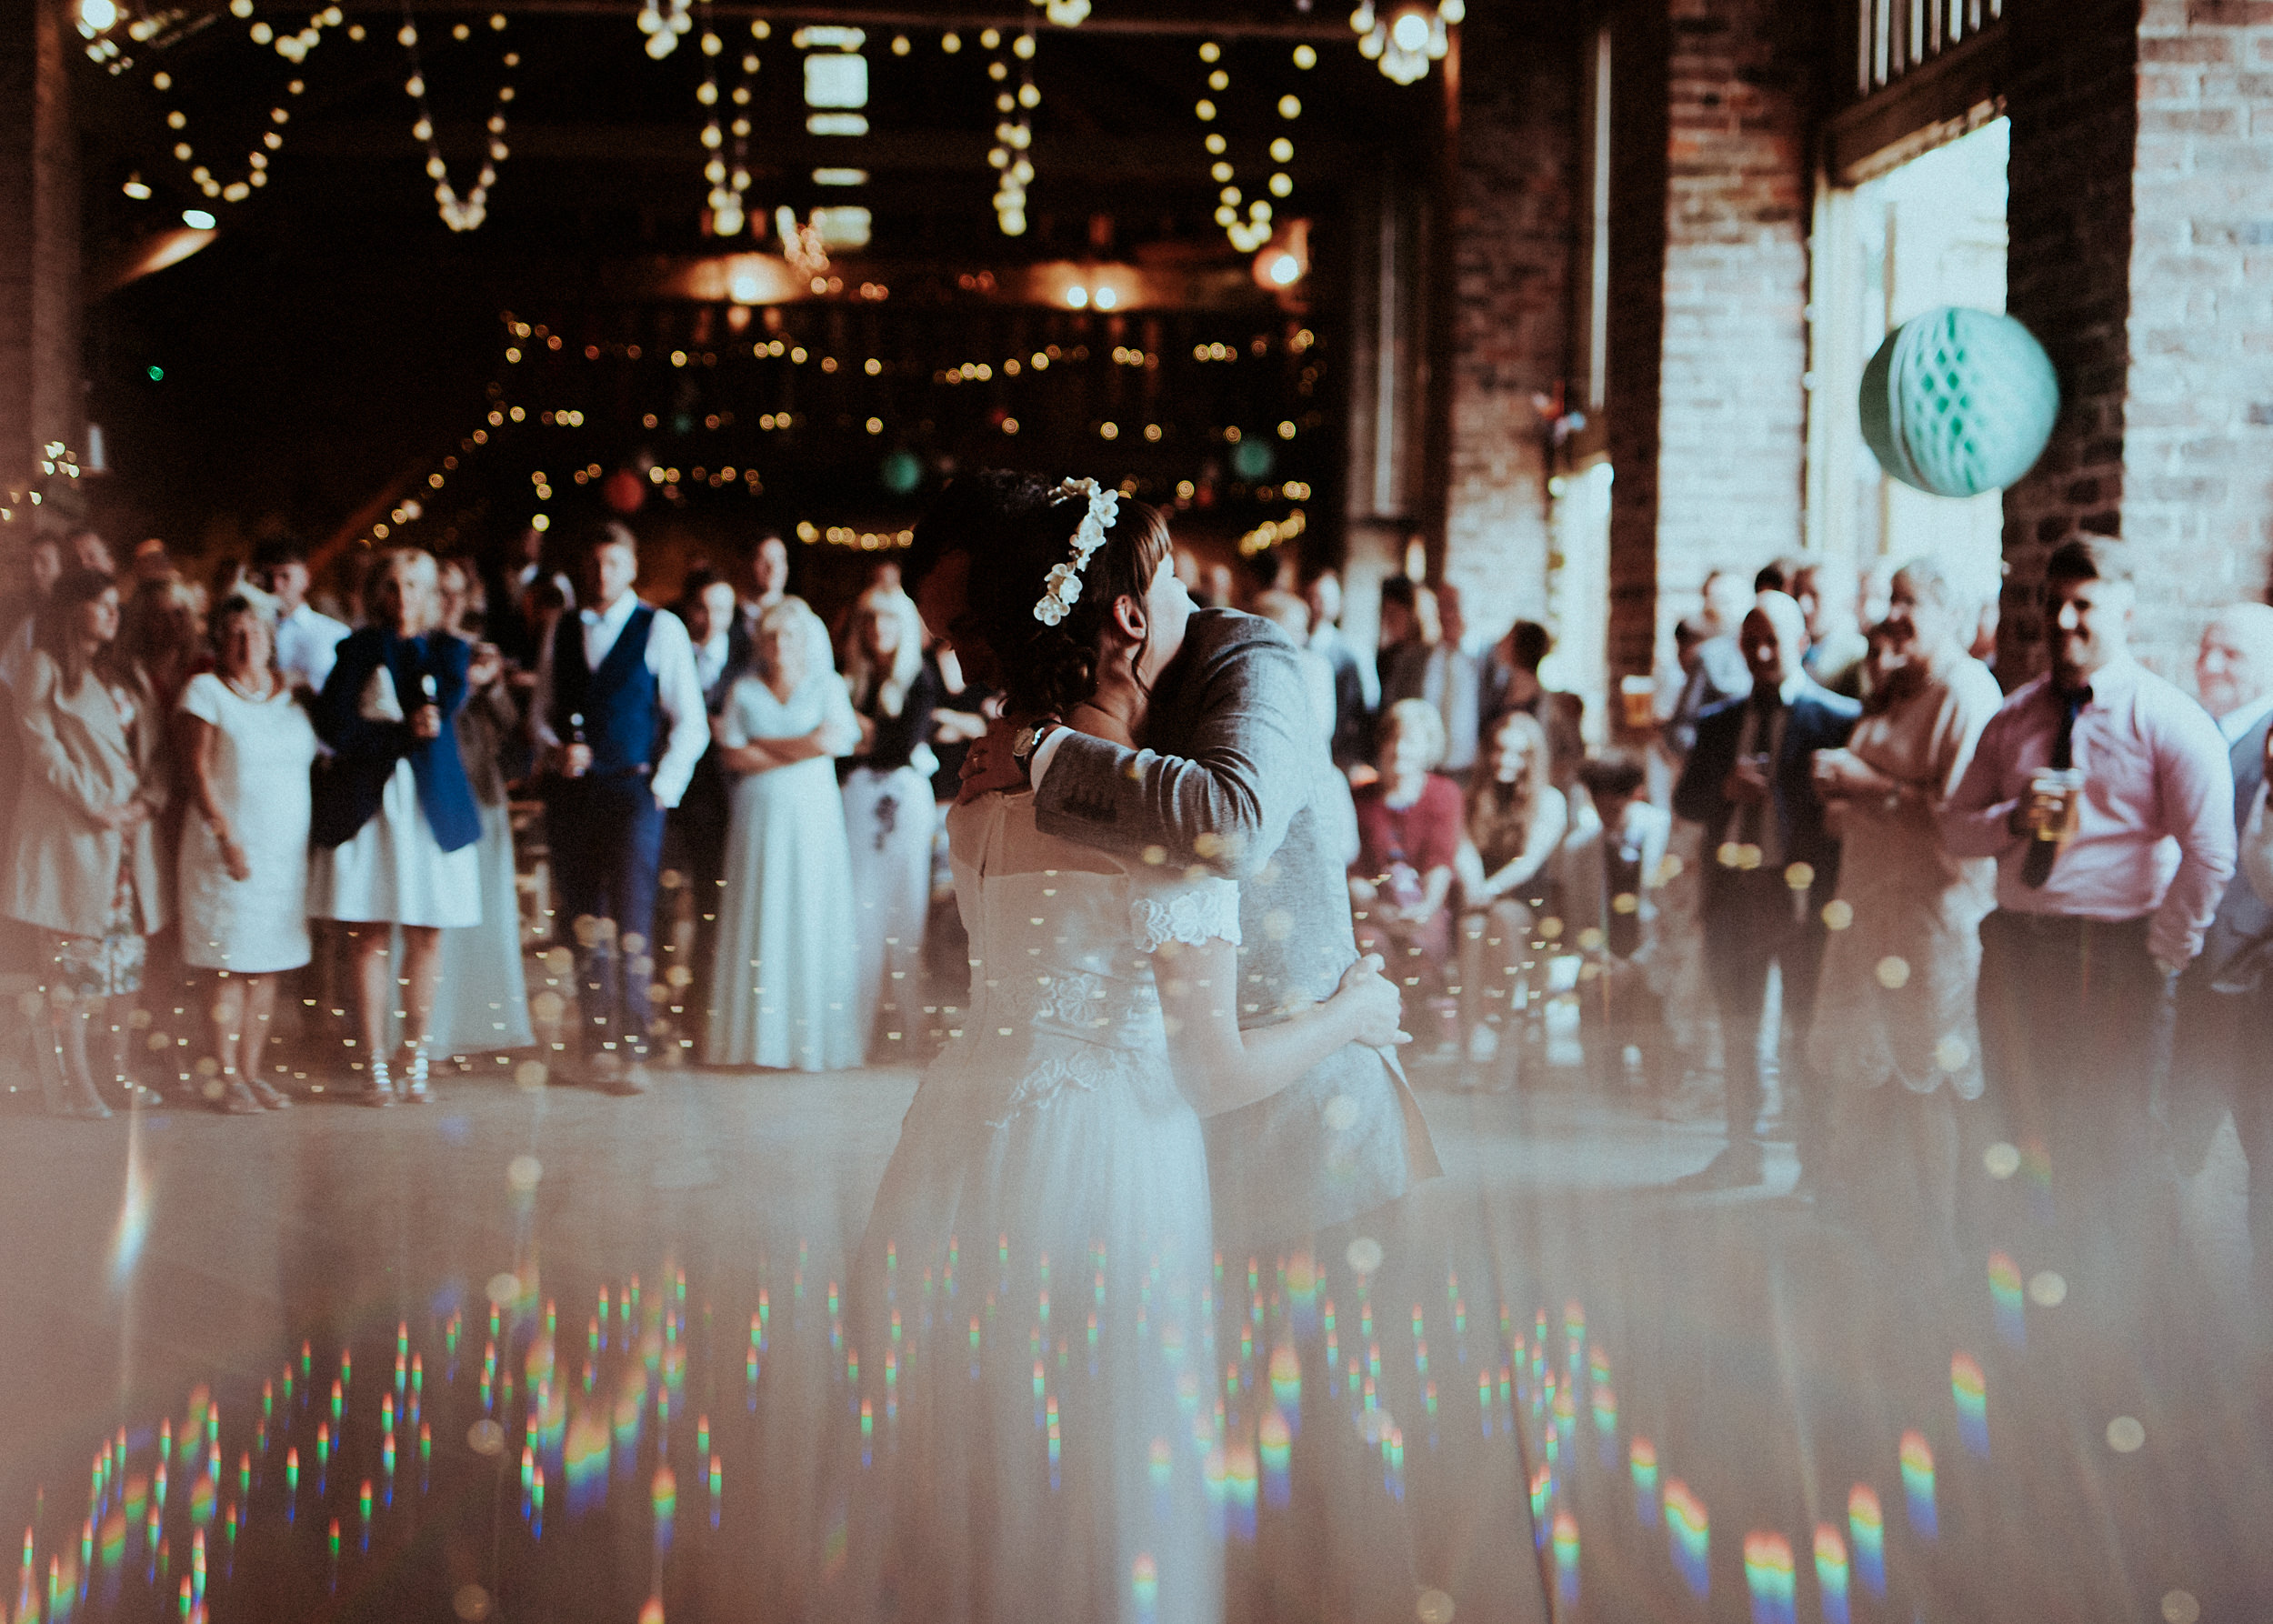 With a dress from Glory Days Vintage & The awesome Camp Katur. This magical wedding is filled with fairy lit first dances, a beautiful bride & groom. & enough badassery to feature on Rock My Wedding.